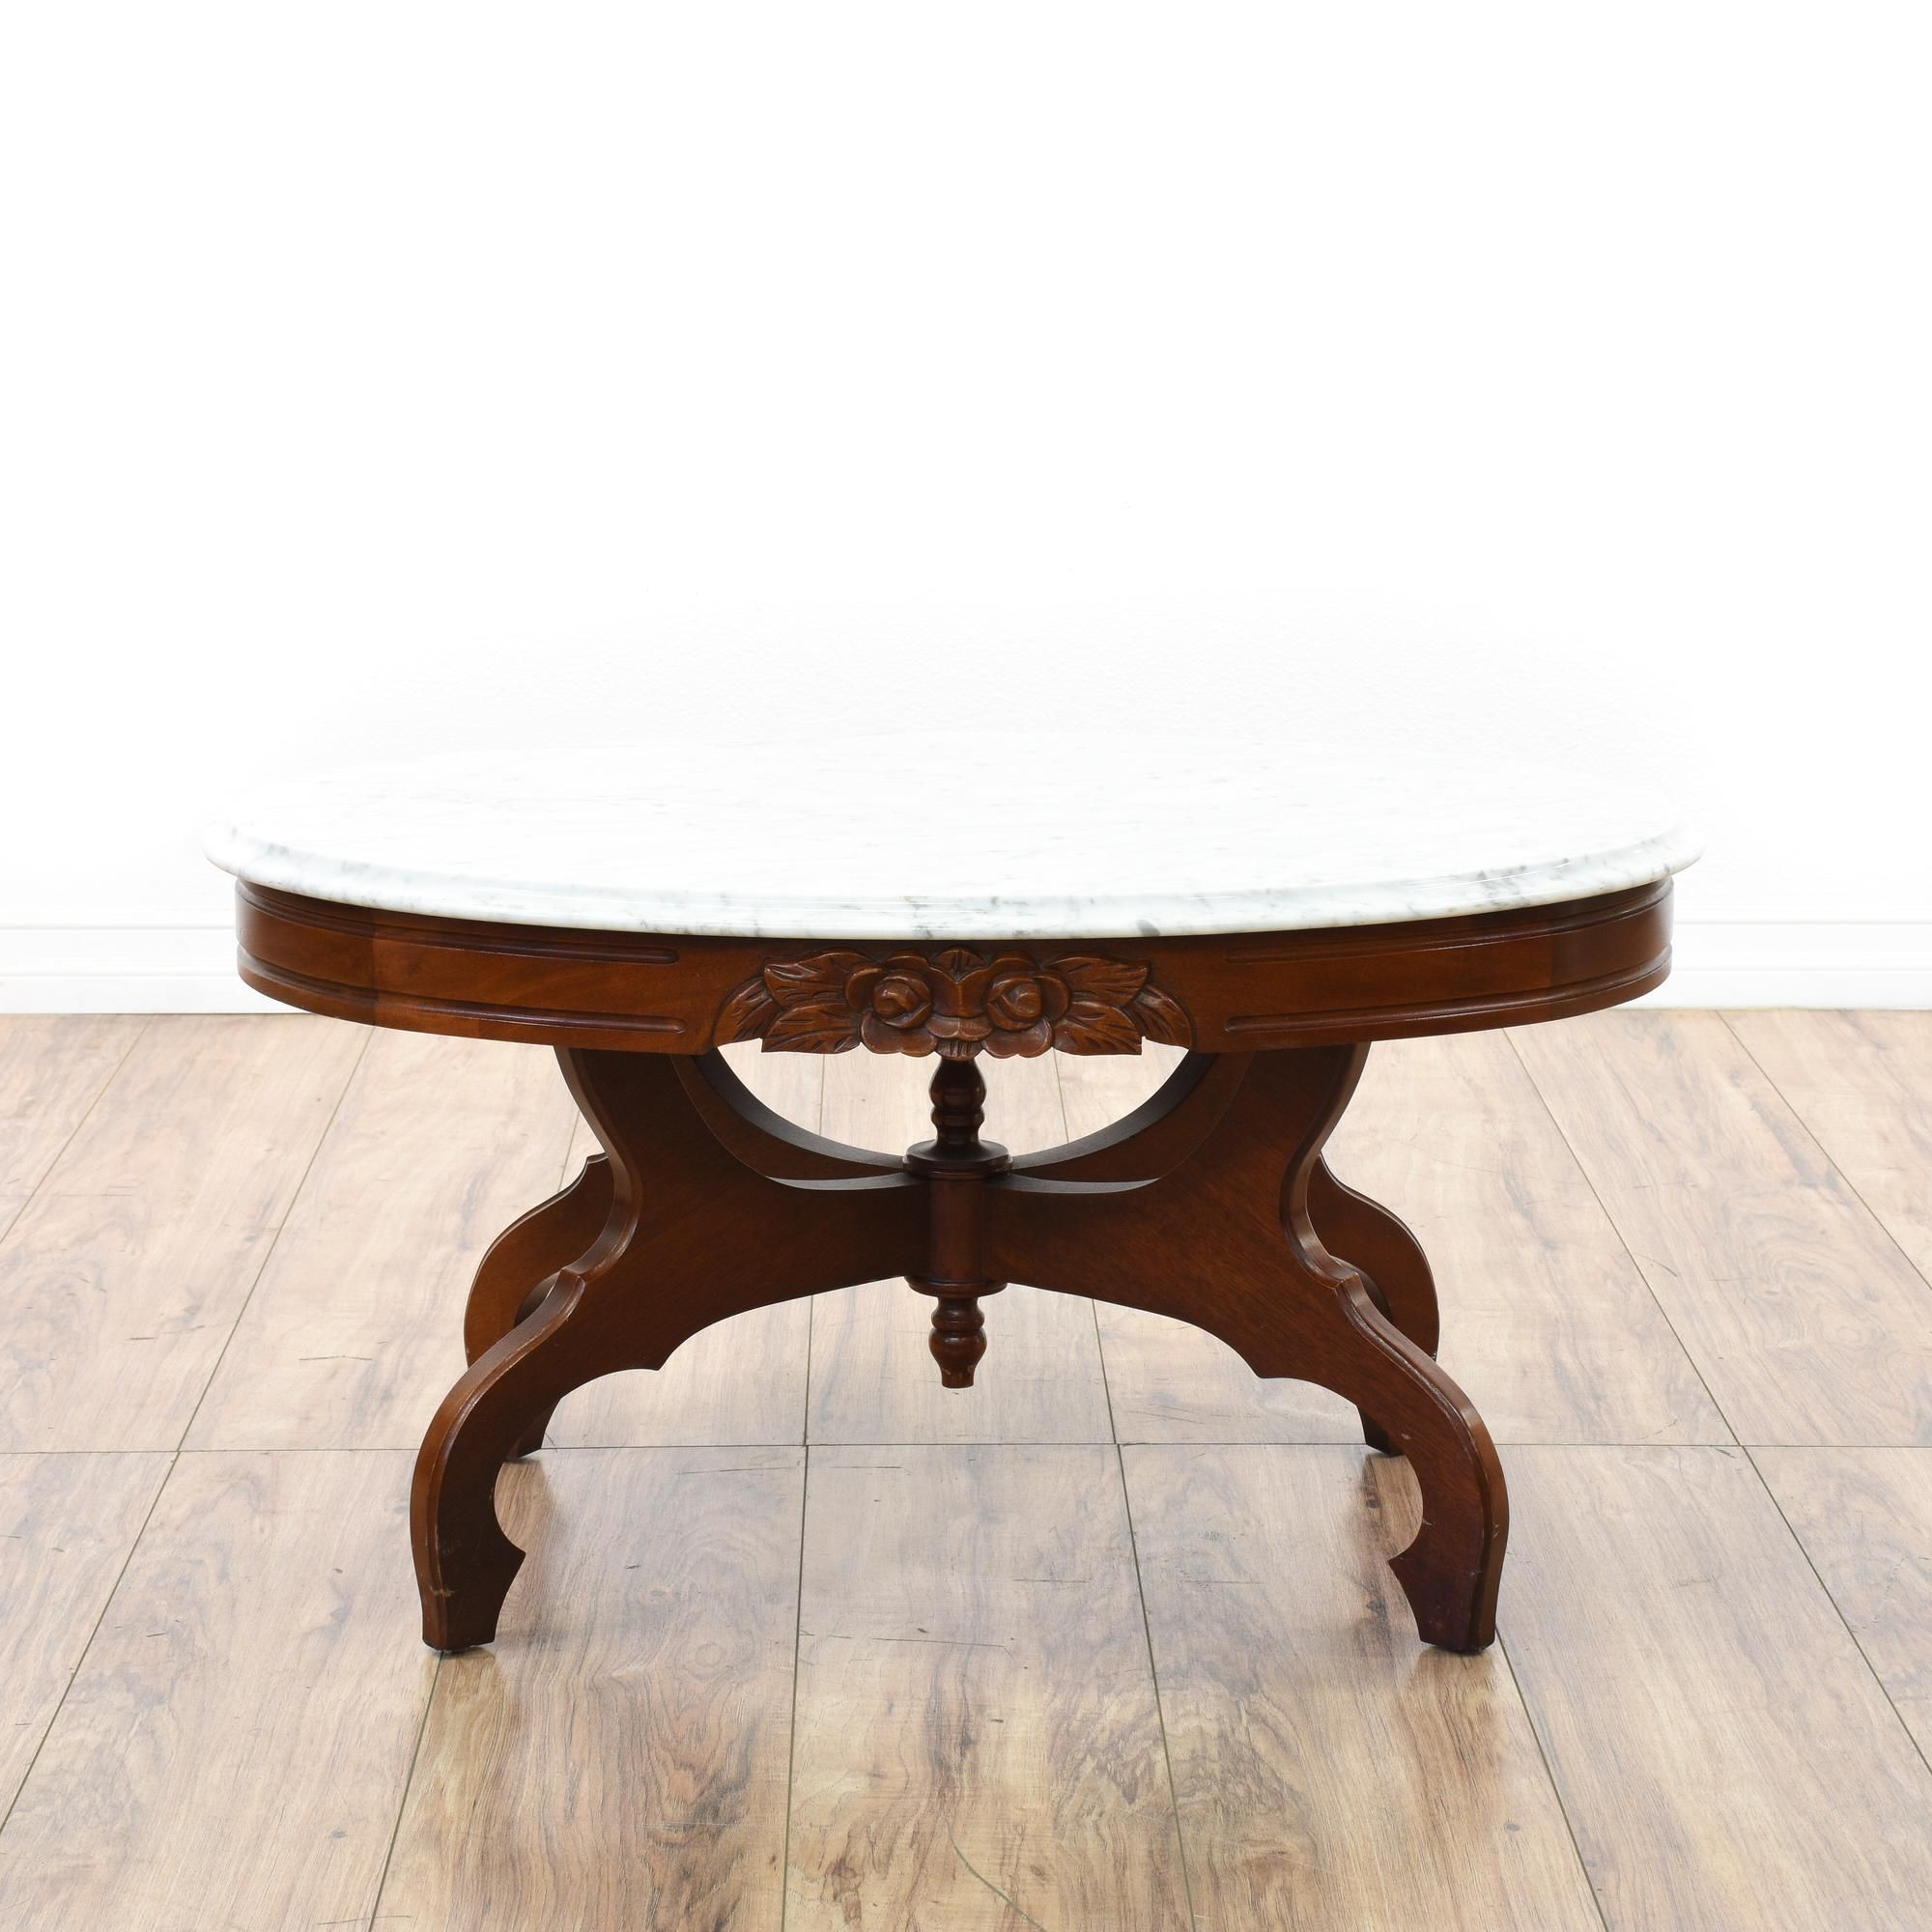 This Victorian Coffee Table Is Featured In A Solid Wood With A Glossy Dark Cherry Finish This Elegant Coffee Table Has An Oval White Marble Marble Top Coffee Table Victorian